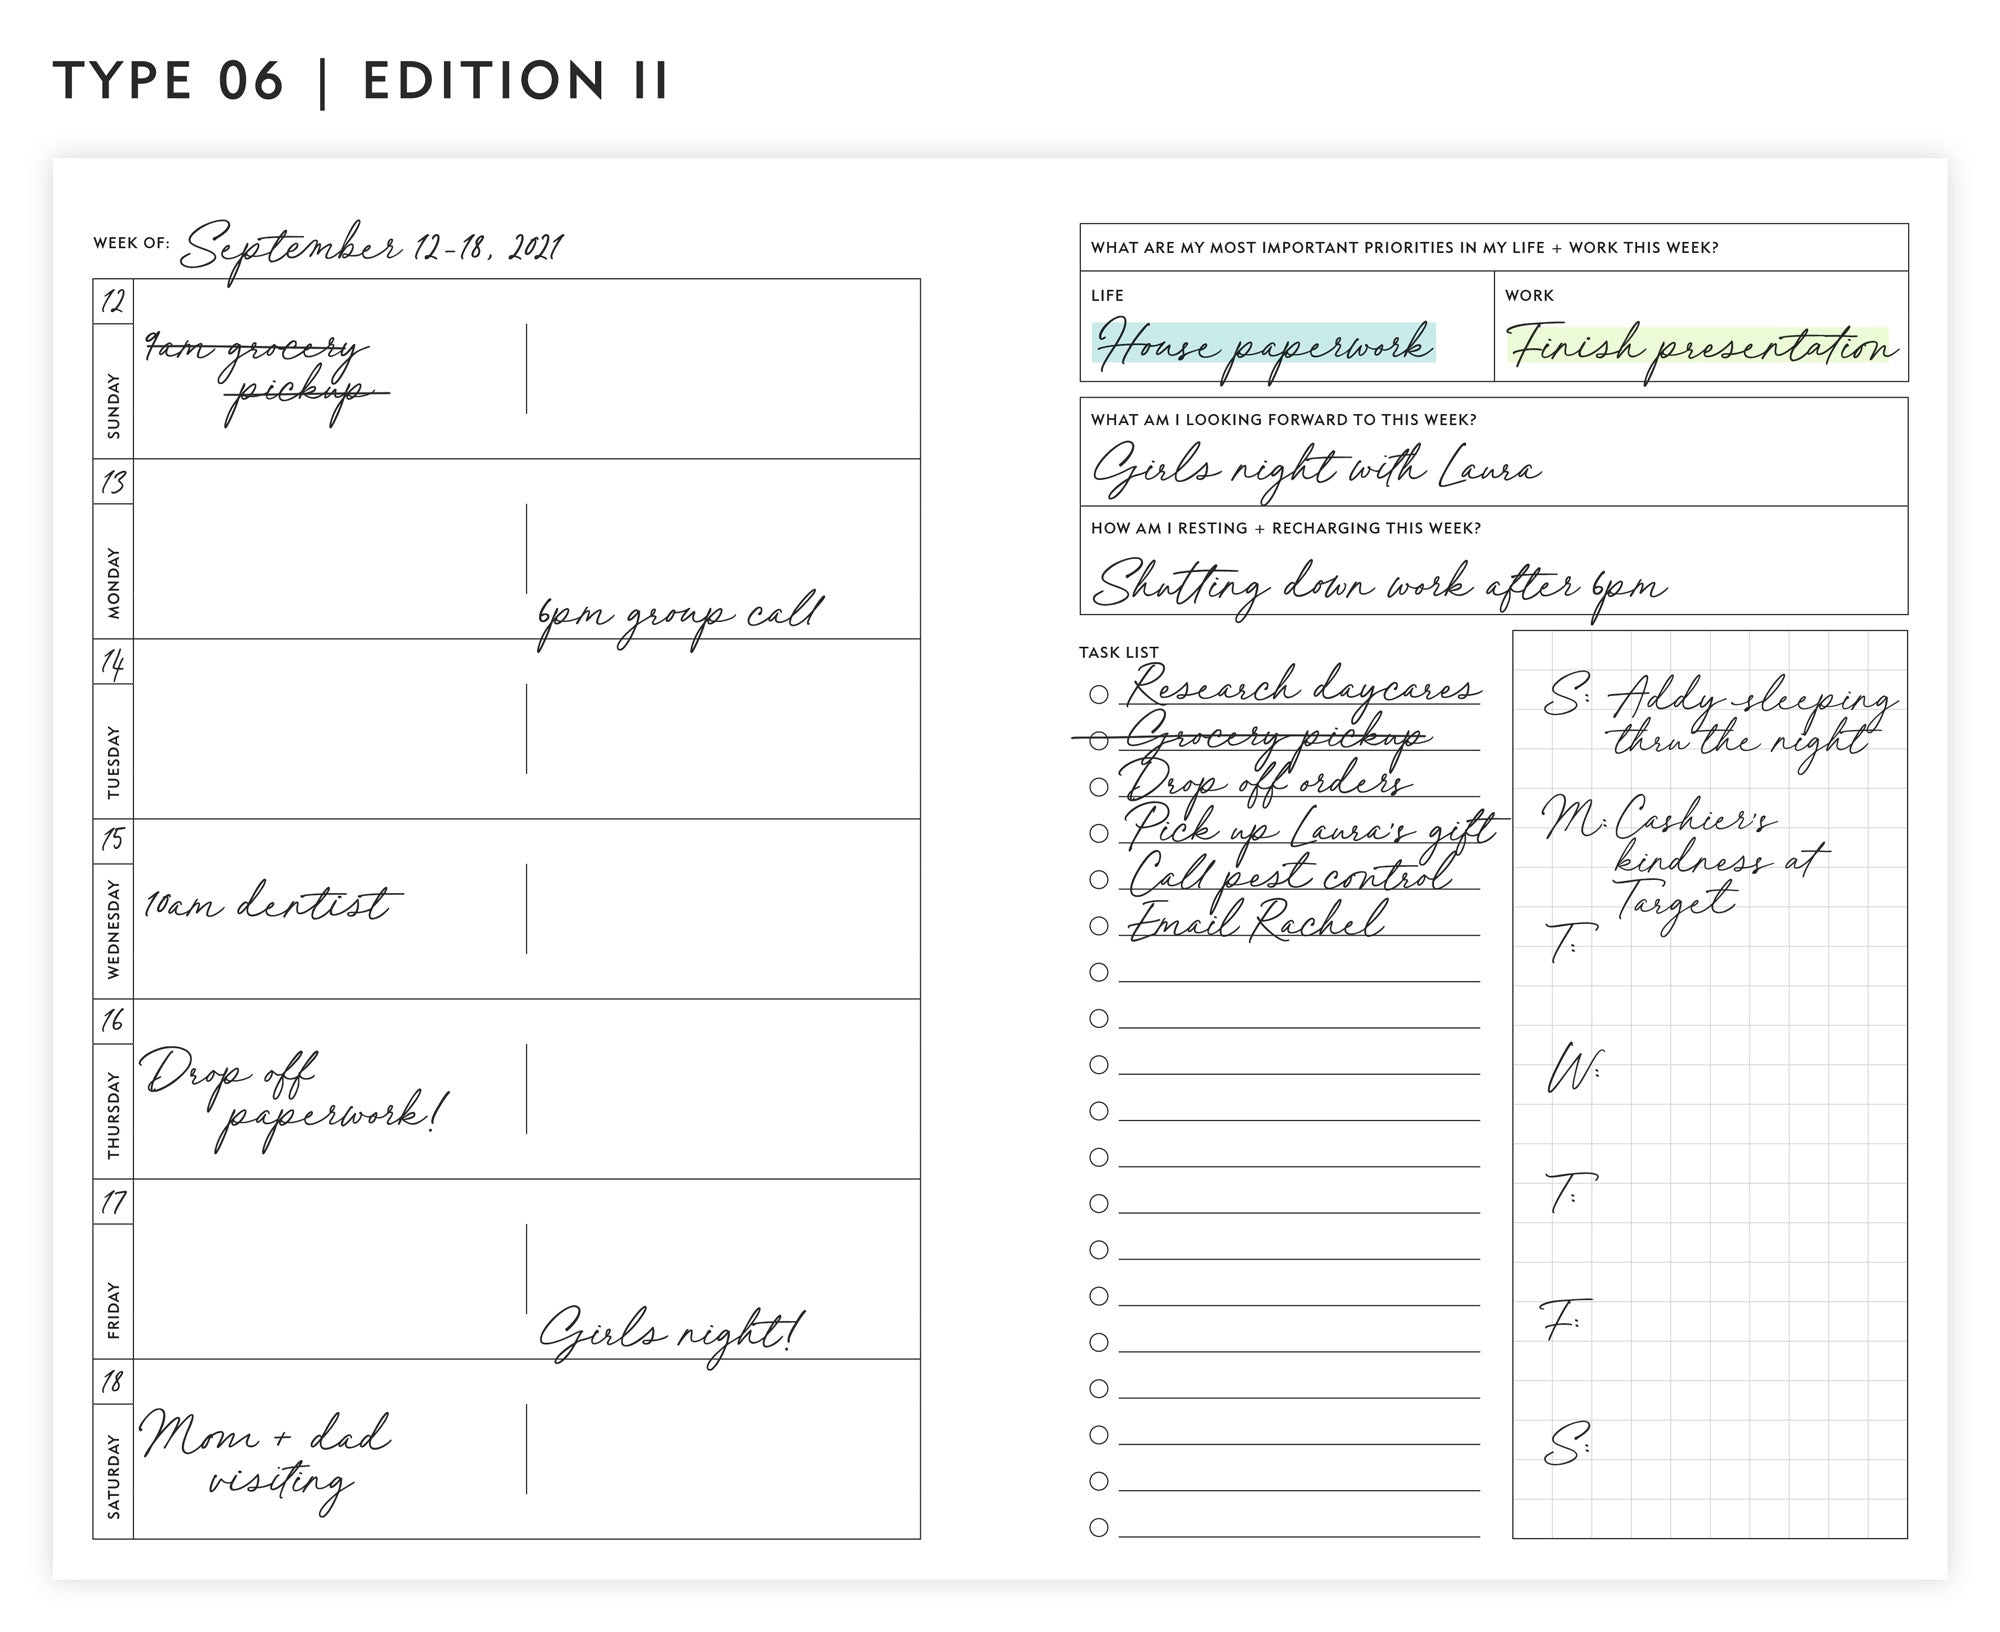 Guided Enneagram Planner Type 06   Edition II